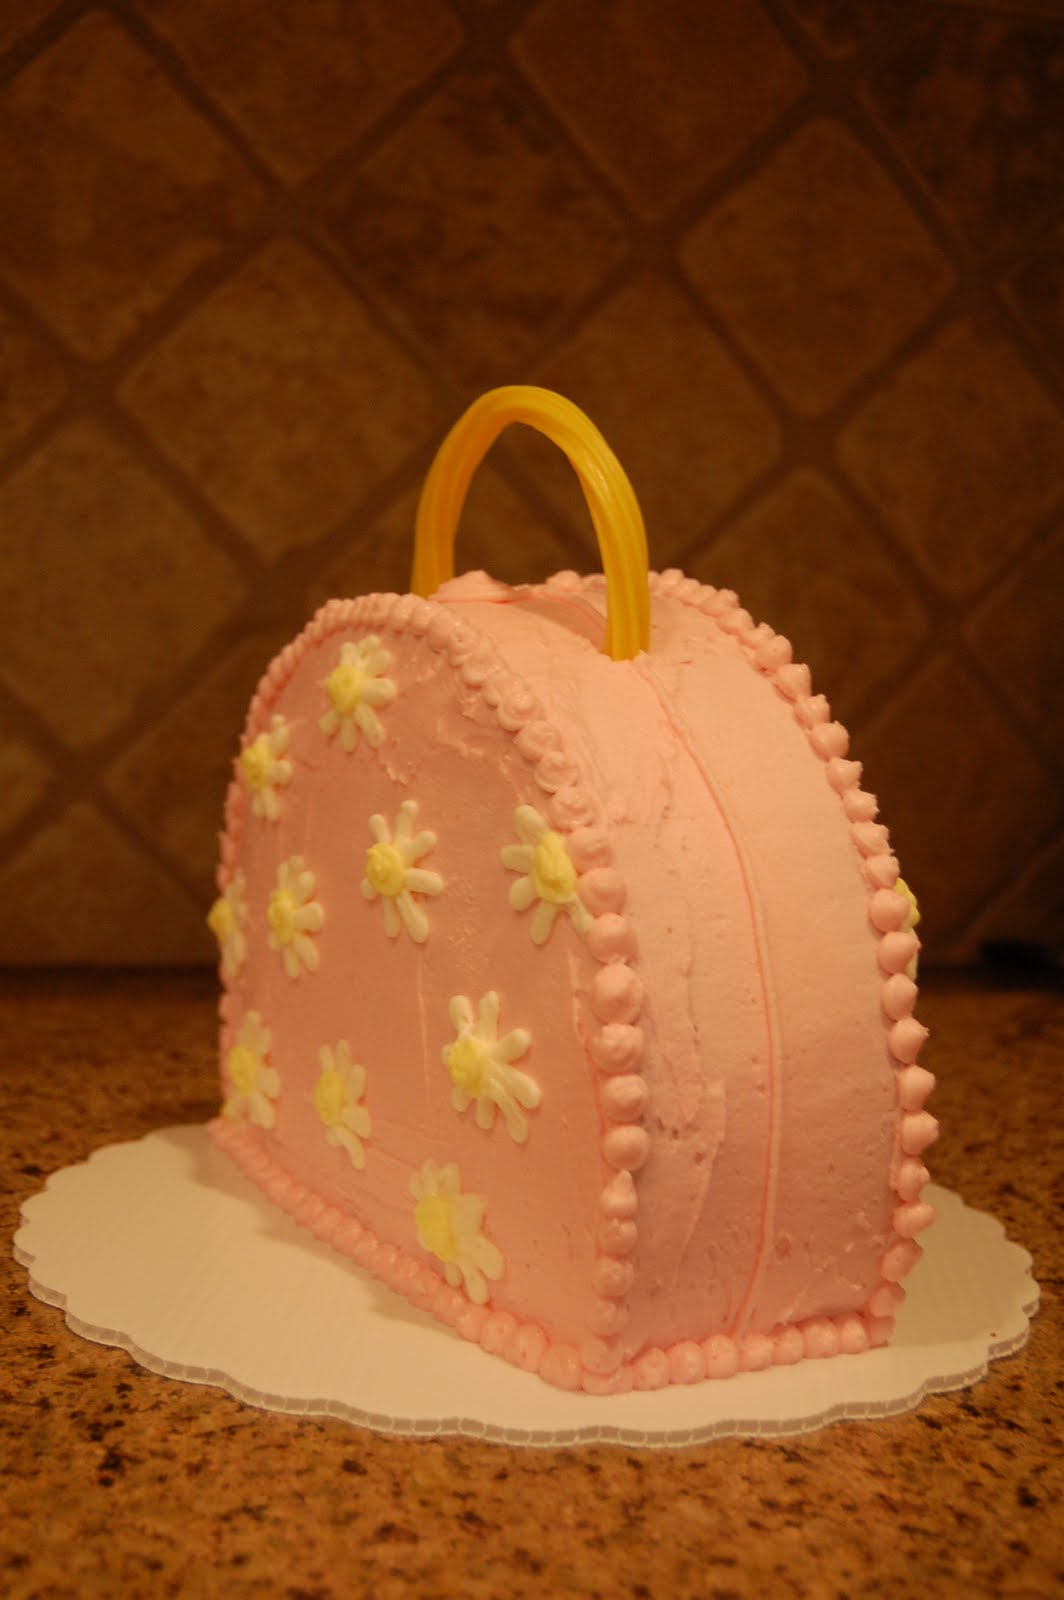 how to make a purse cake with buttercream icing